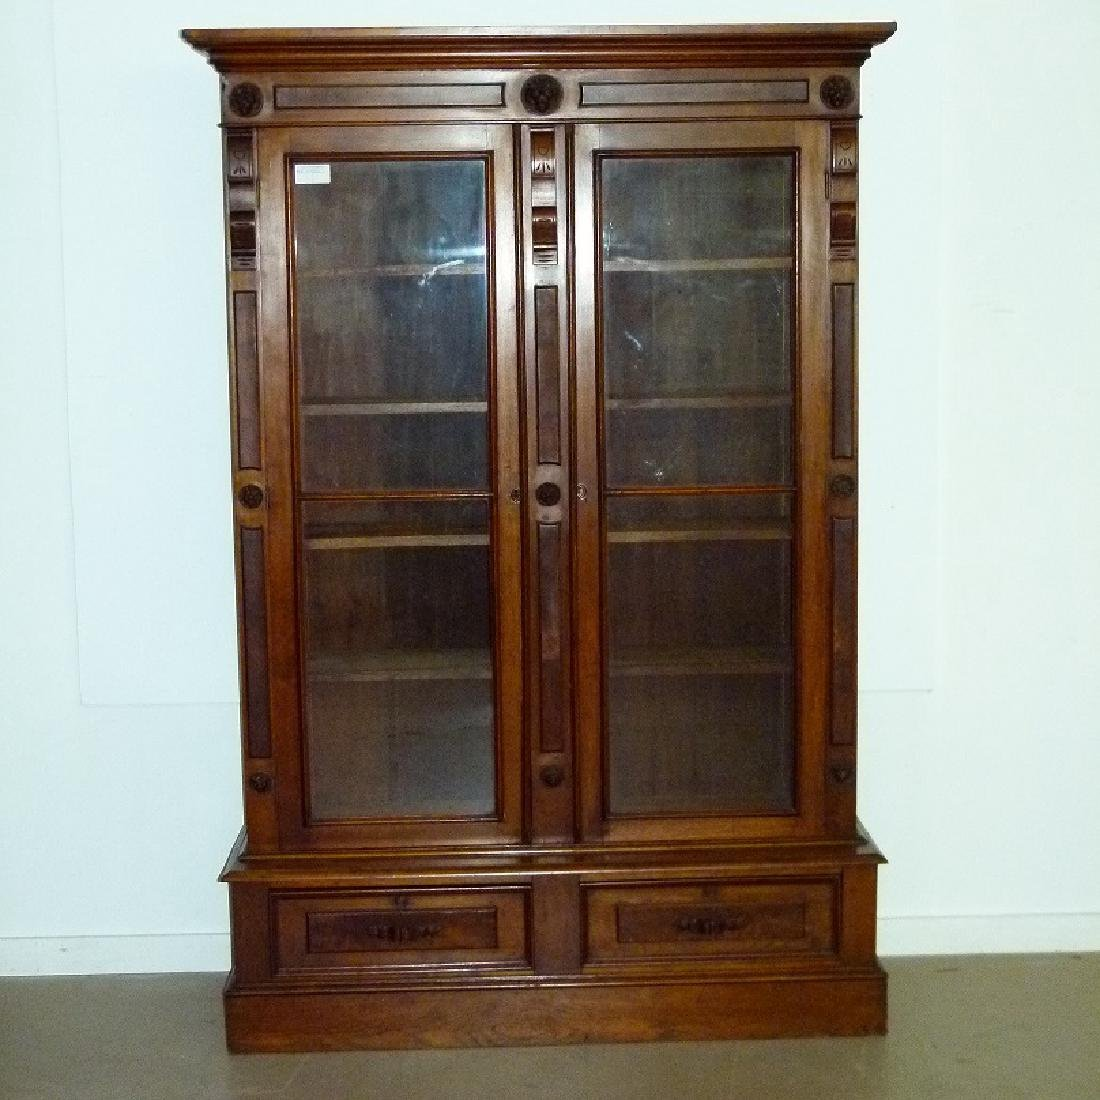 VICTORIAN WALNUT DOUBLE DOOR BOOKCASE, C. 1870